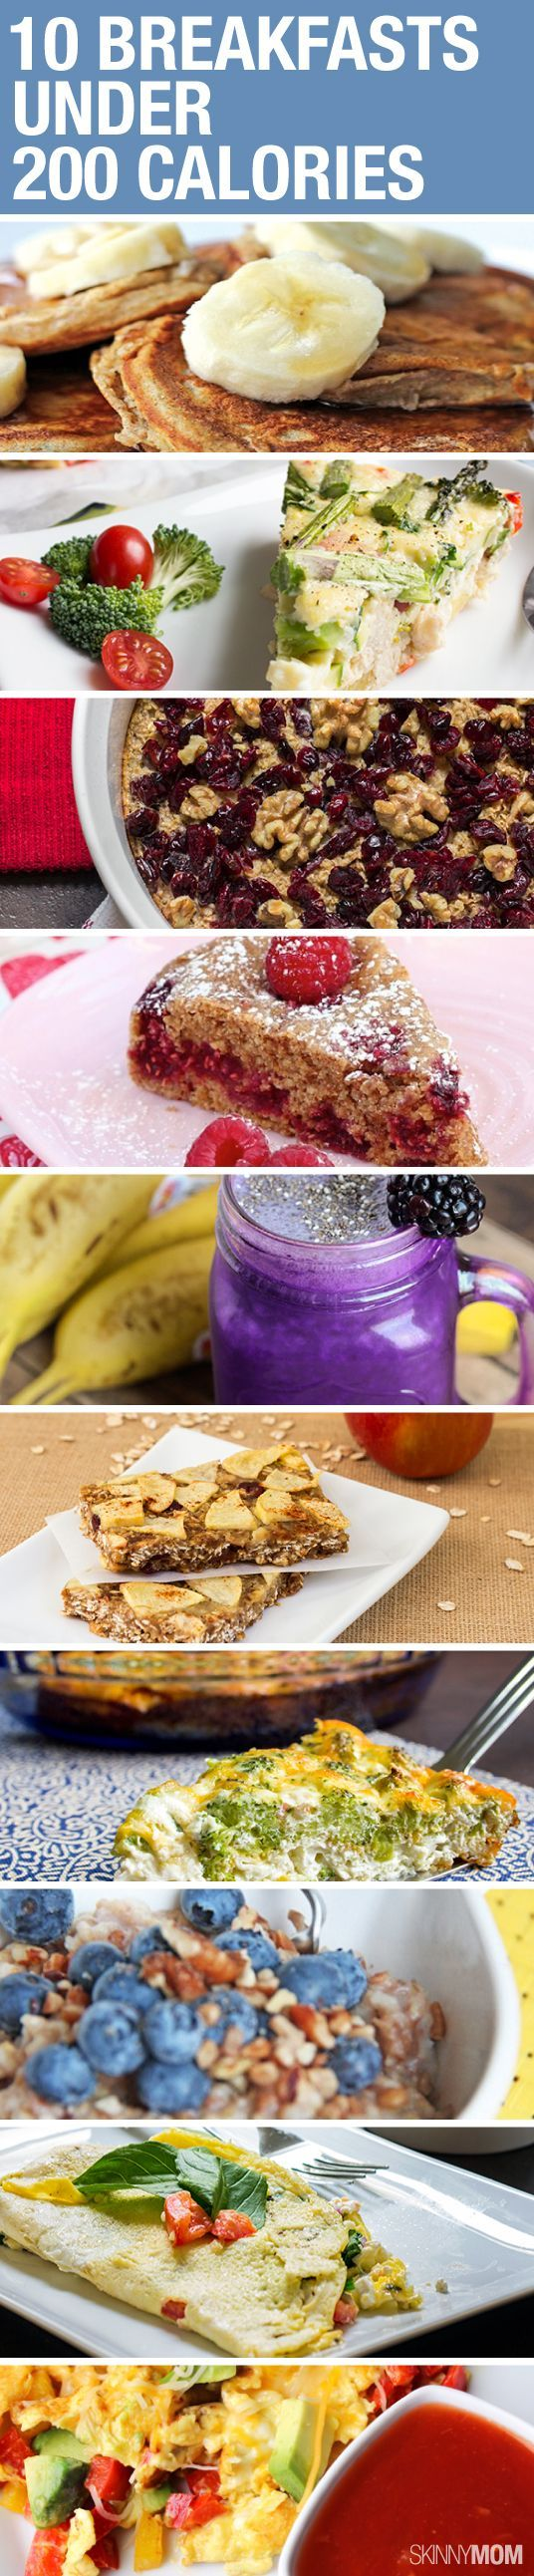 Trying to lose weight? Try one of these delicious breakfasts UNDER 200 calories!